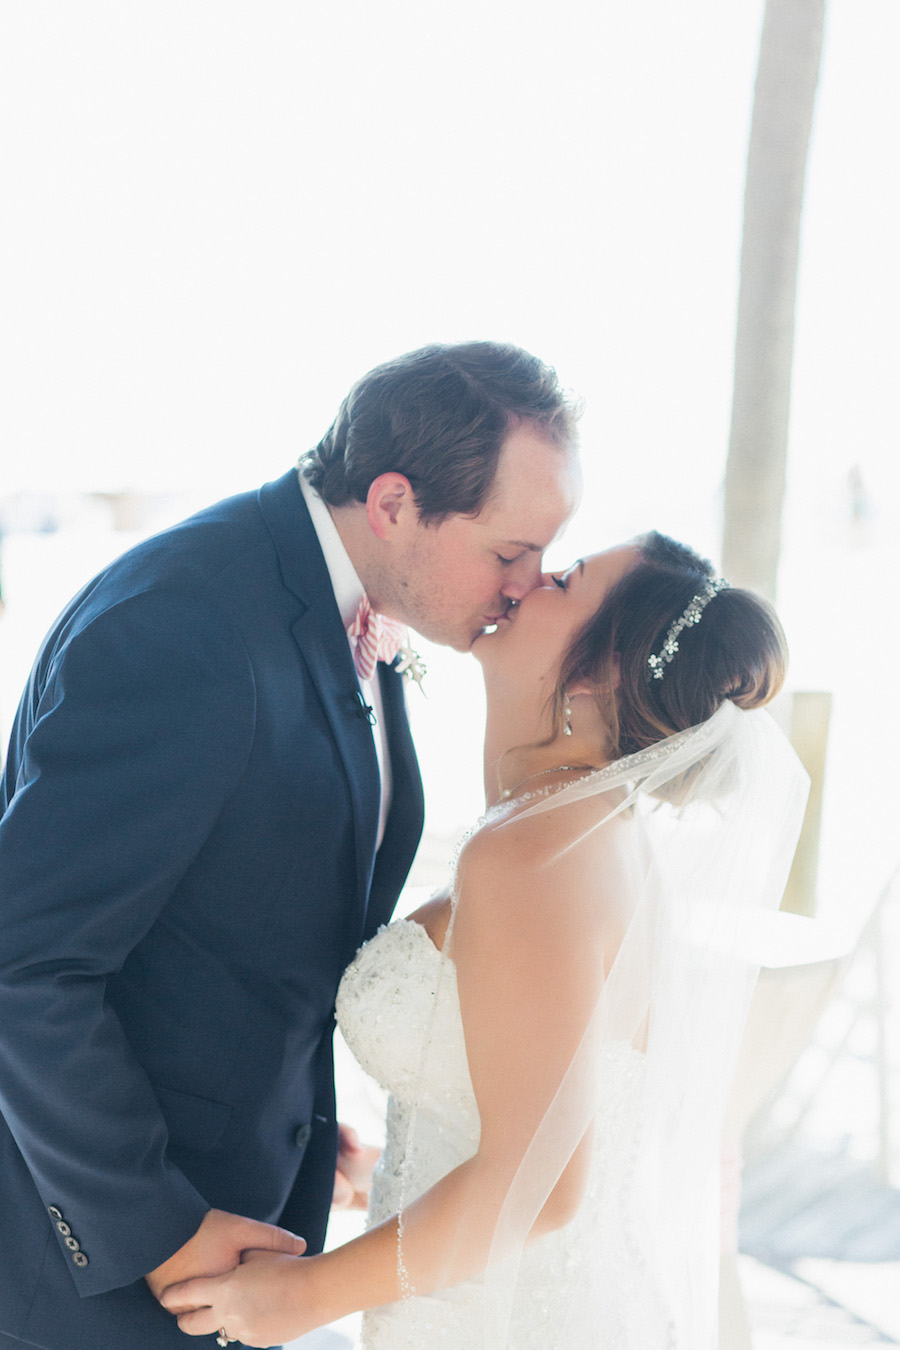 Outdoor Clearwater Beach bride and groom First look wedding portrait | Bride and groom kissing